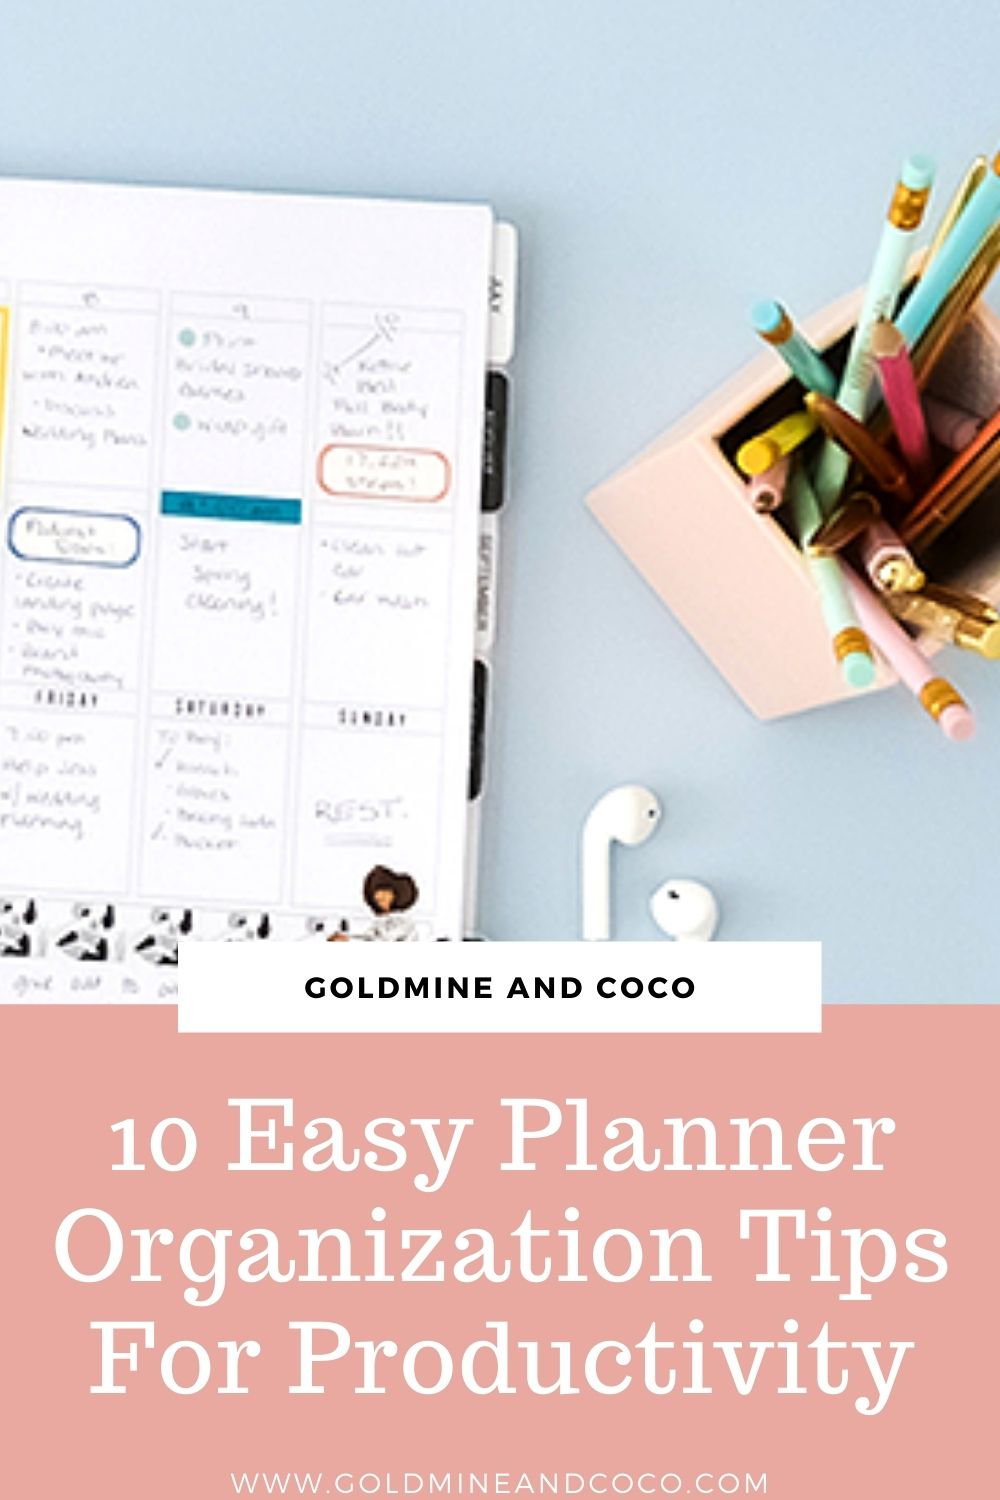 10 Planner Organization Tips To Stay On Top Of Your Day